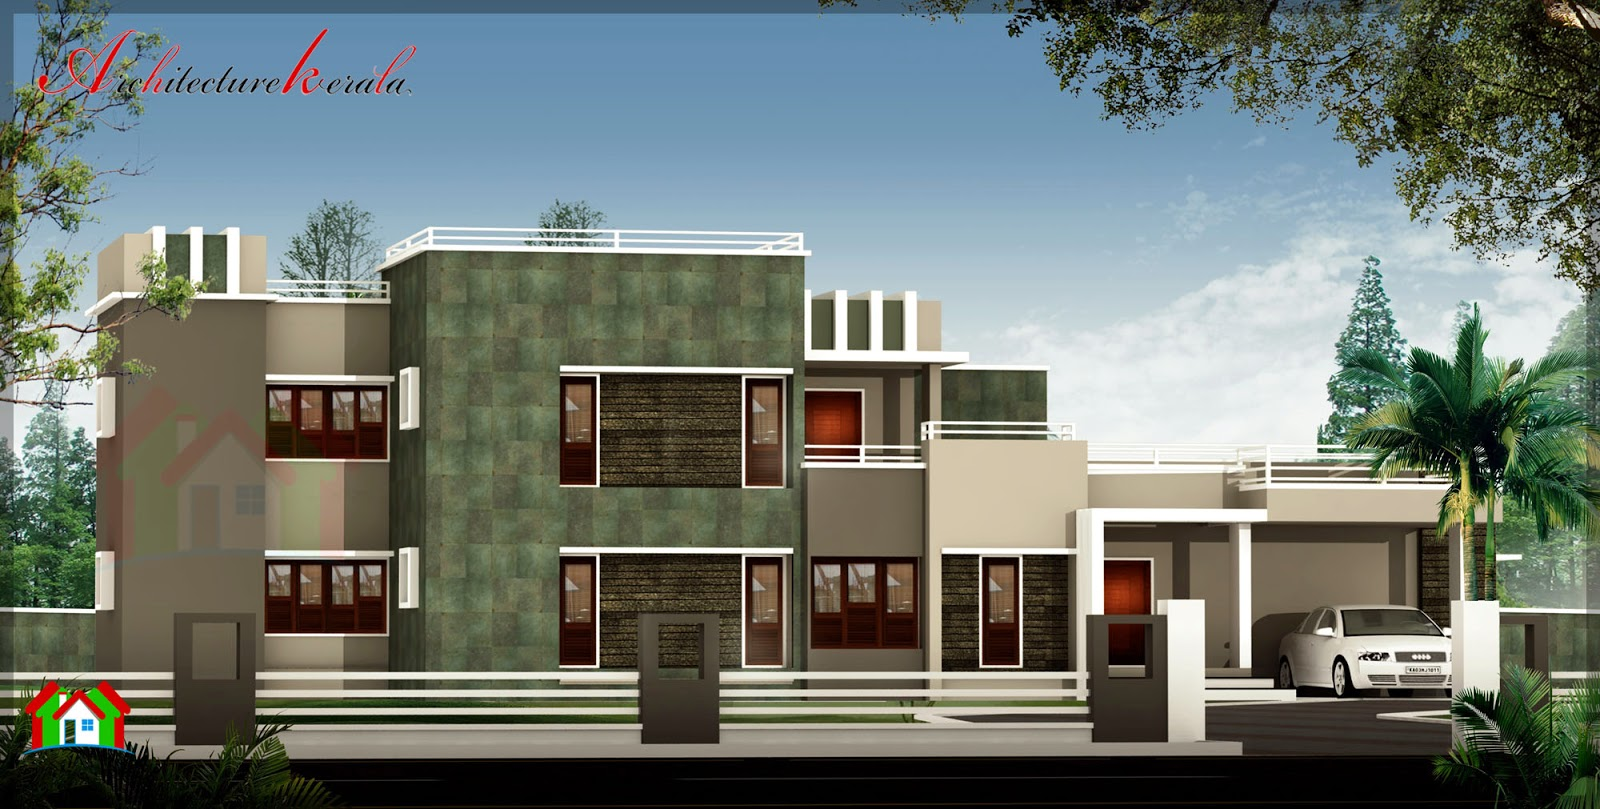 3000 sq ft modern style house elevation architecture kerala for 3000 sq ft building